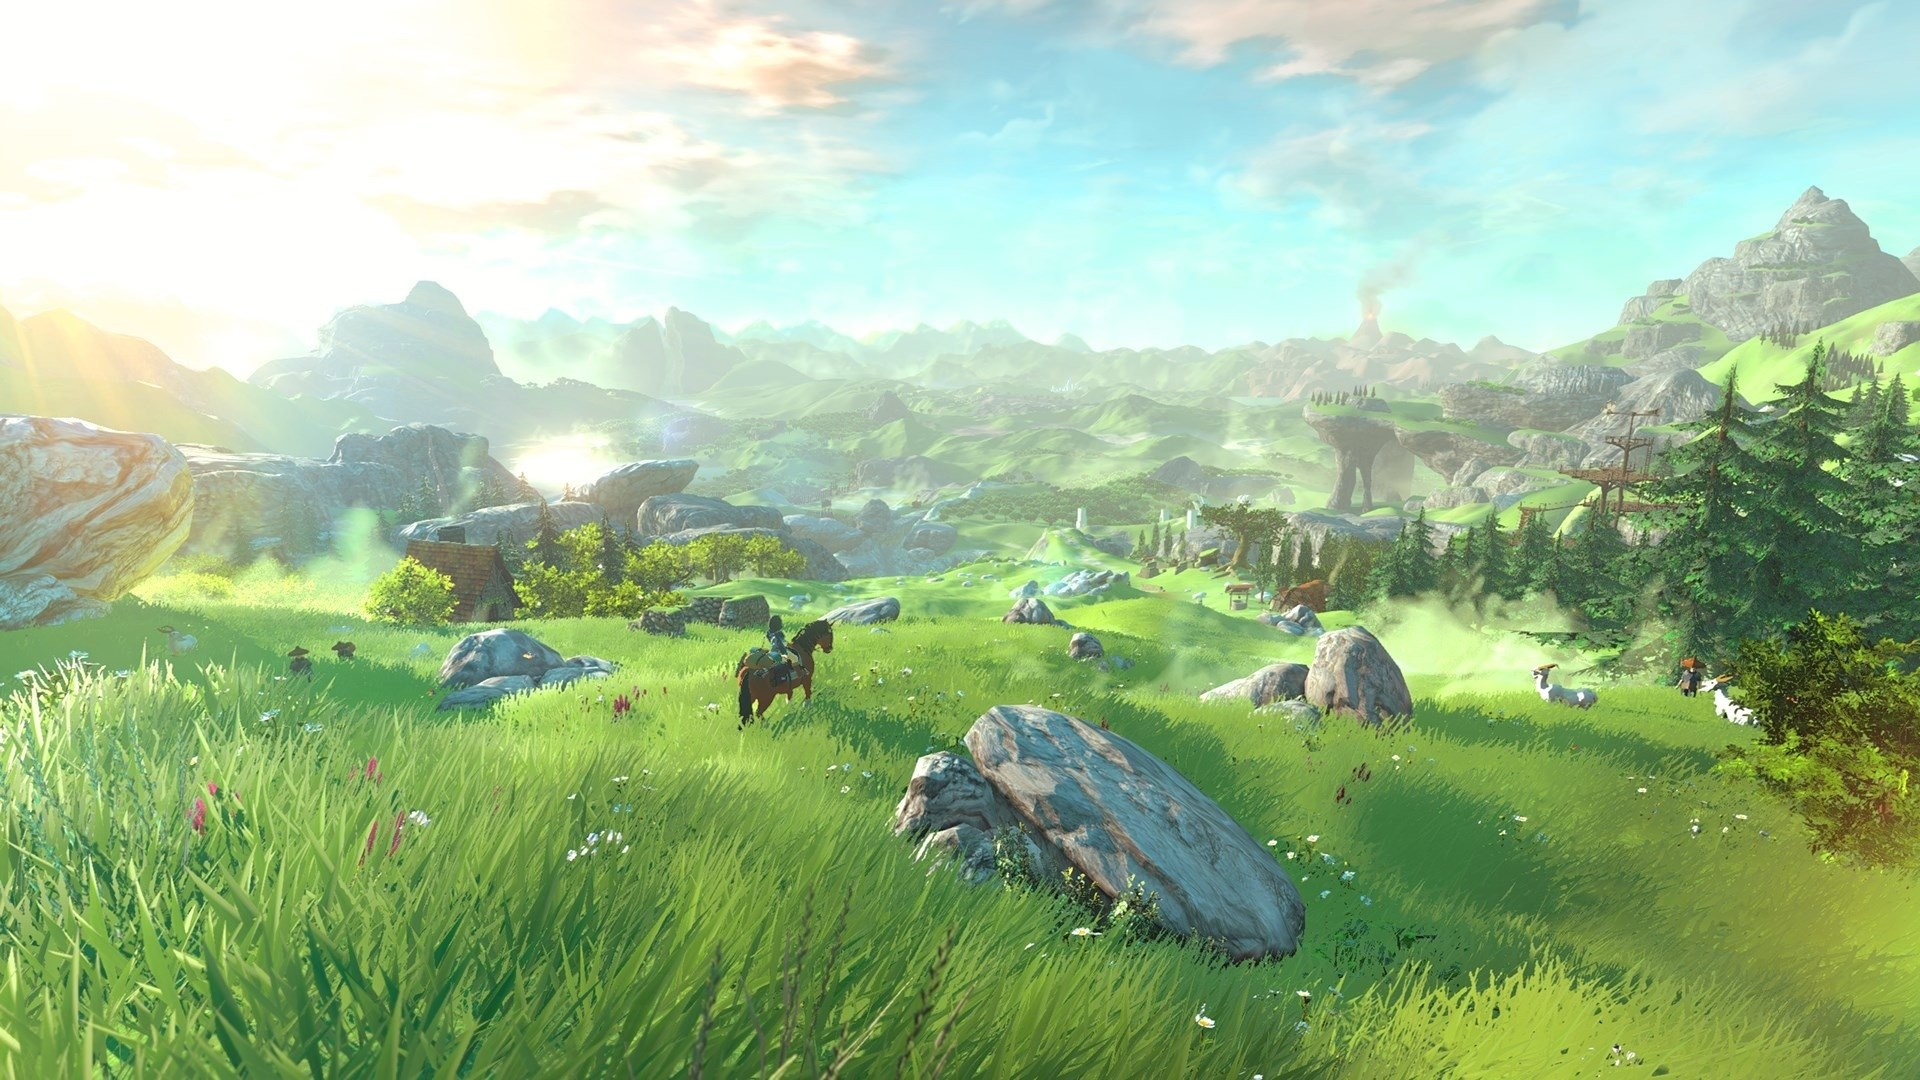 Legend Of Zelda Breath Of The Wild Wallpaper Download Free Hd